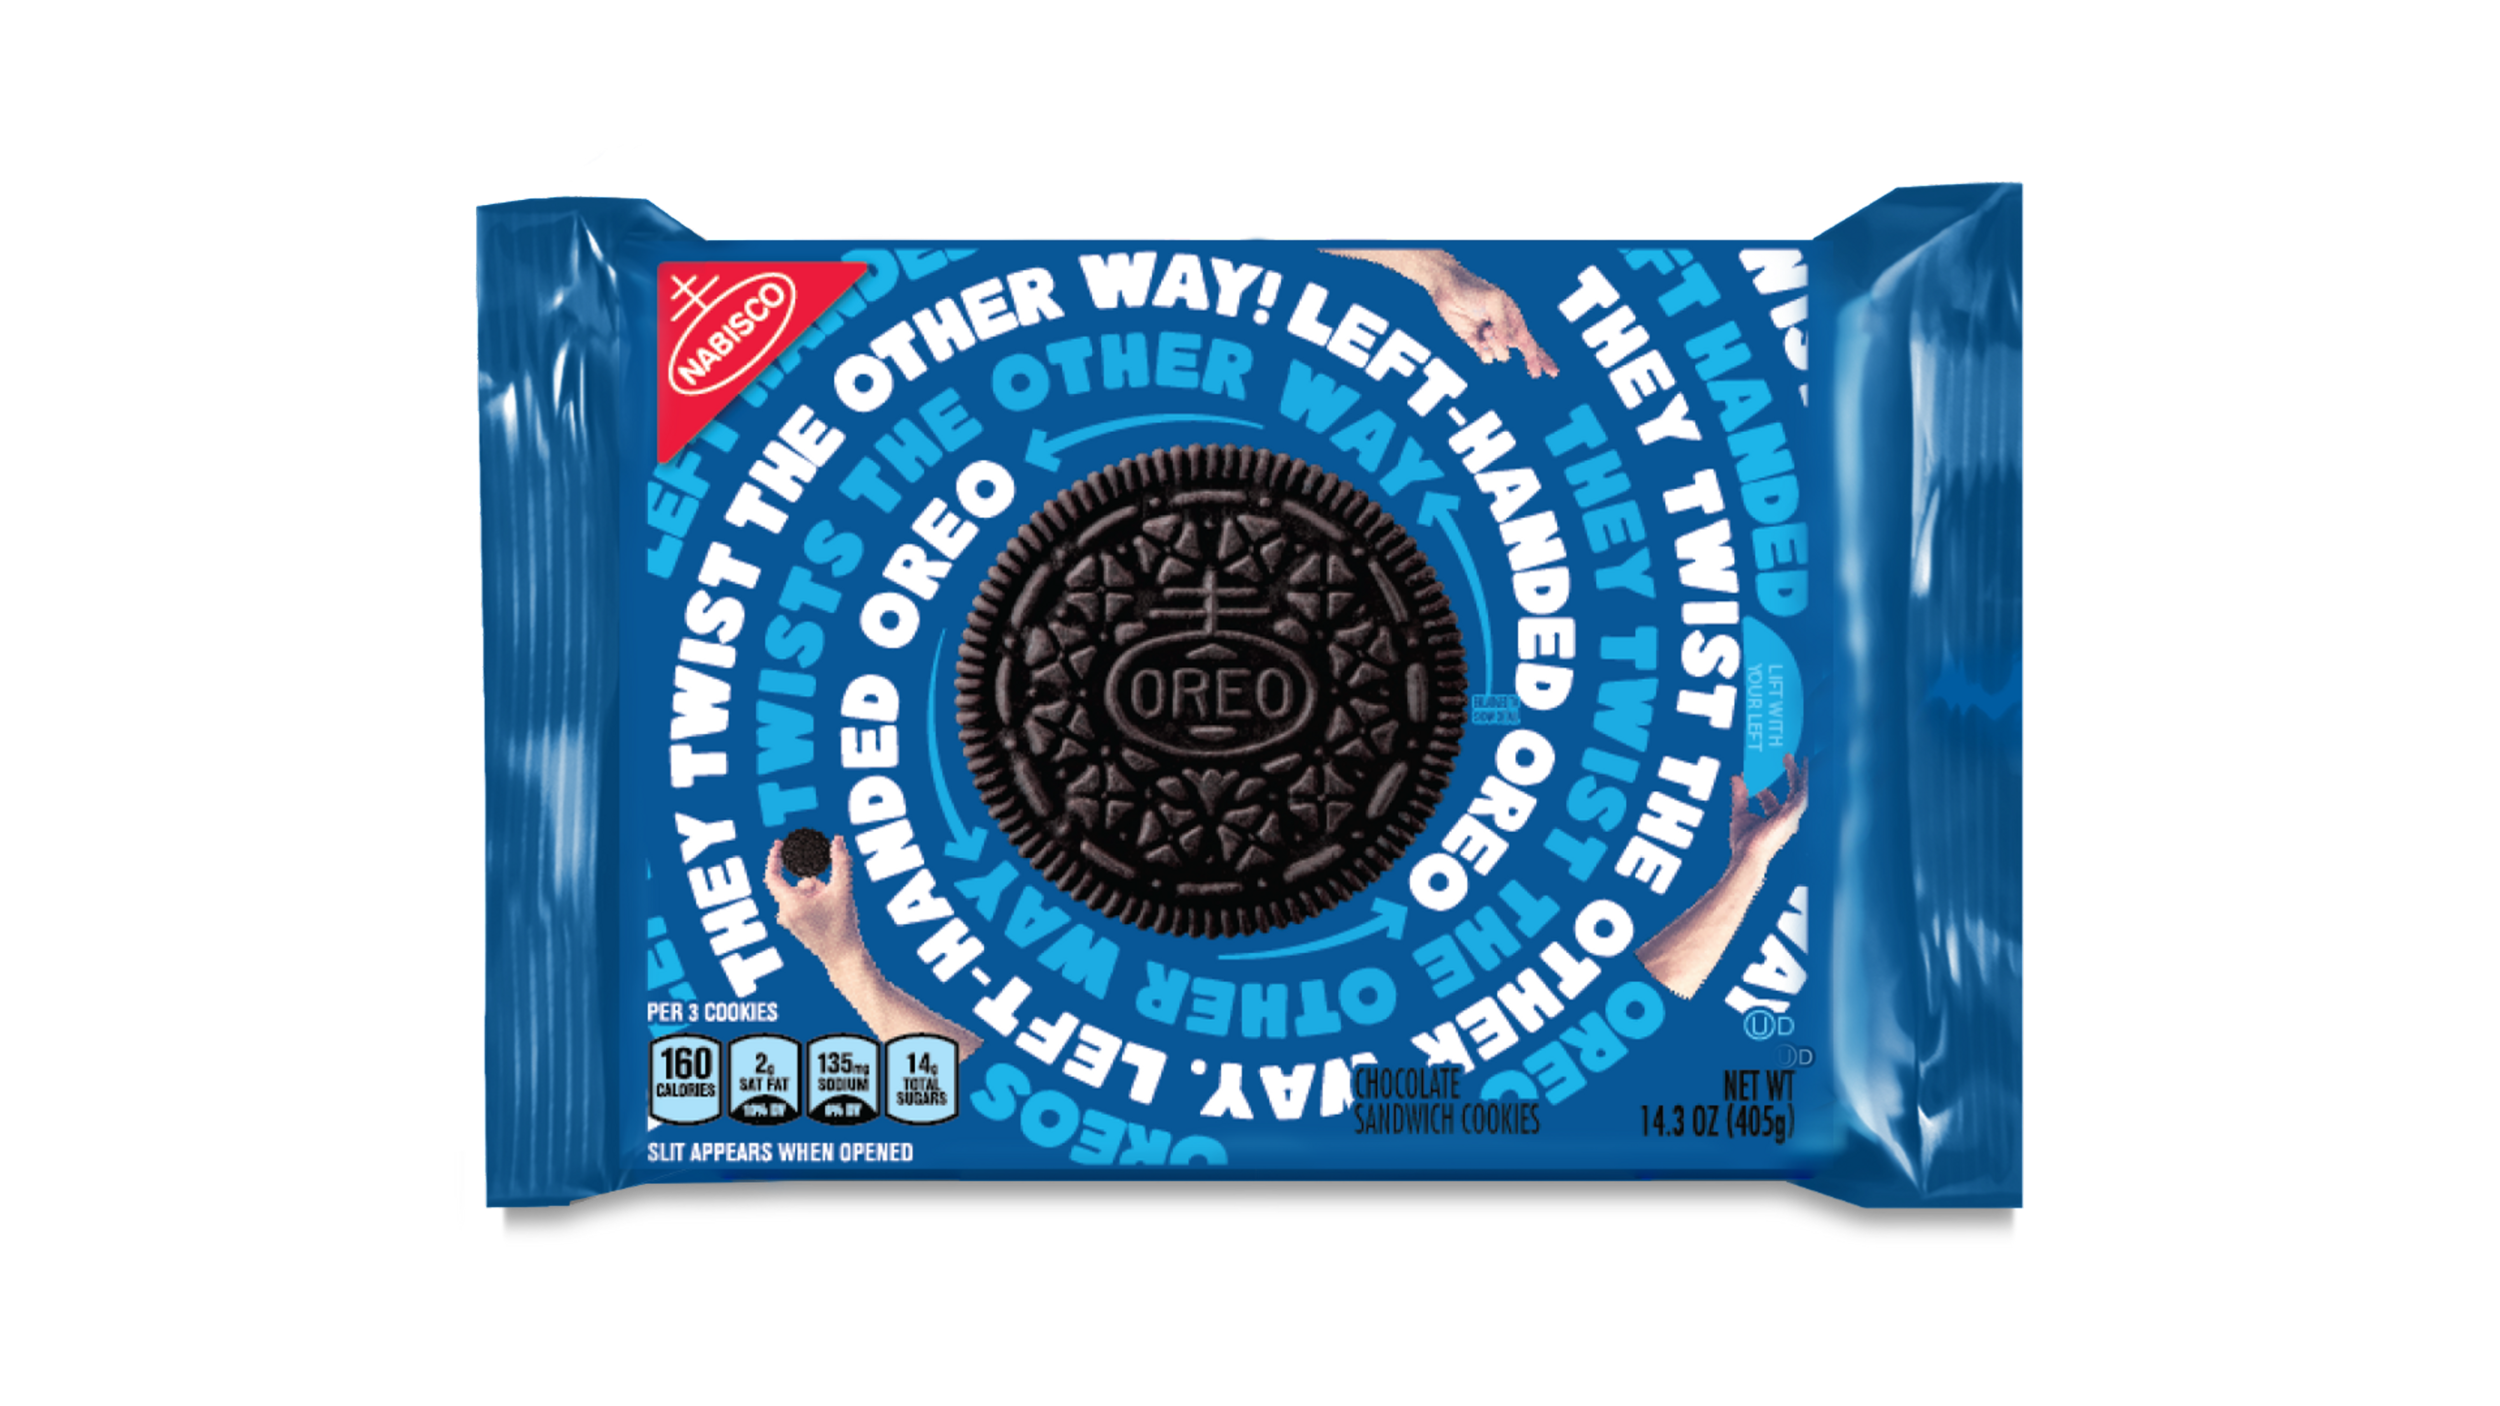 ad7fbf3f-0ef1-4743-a31c-aaced71c1cac-Left-Handed_OREO_Cookies.png